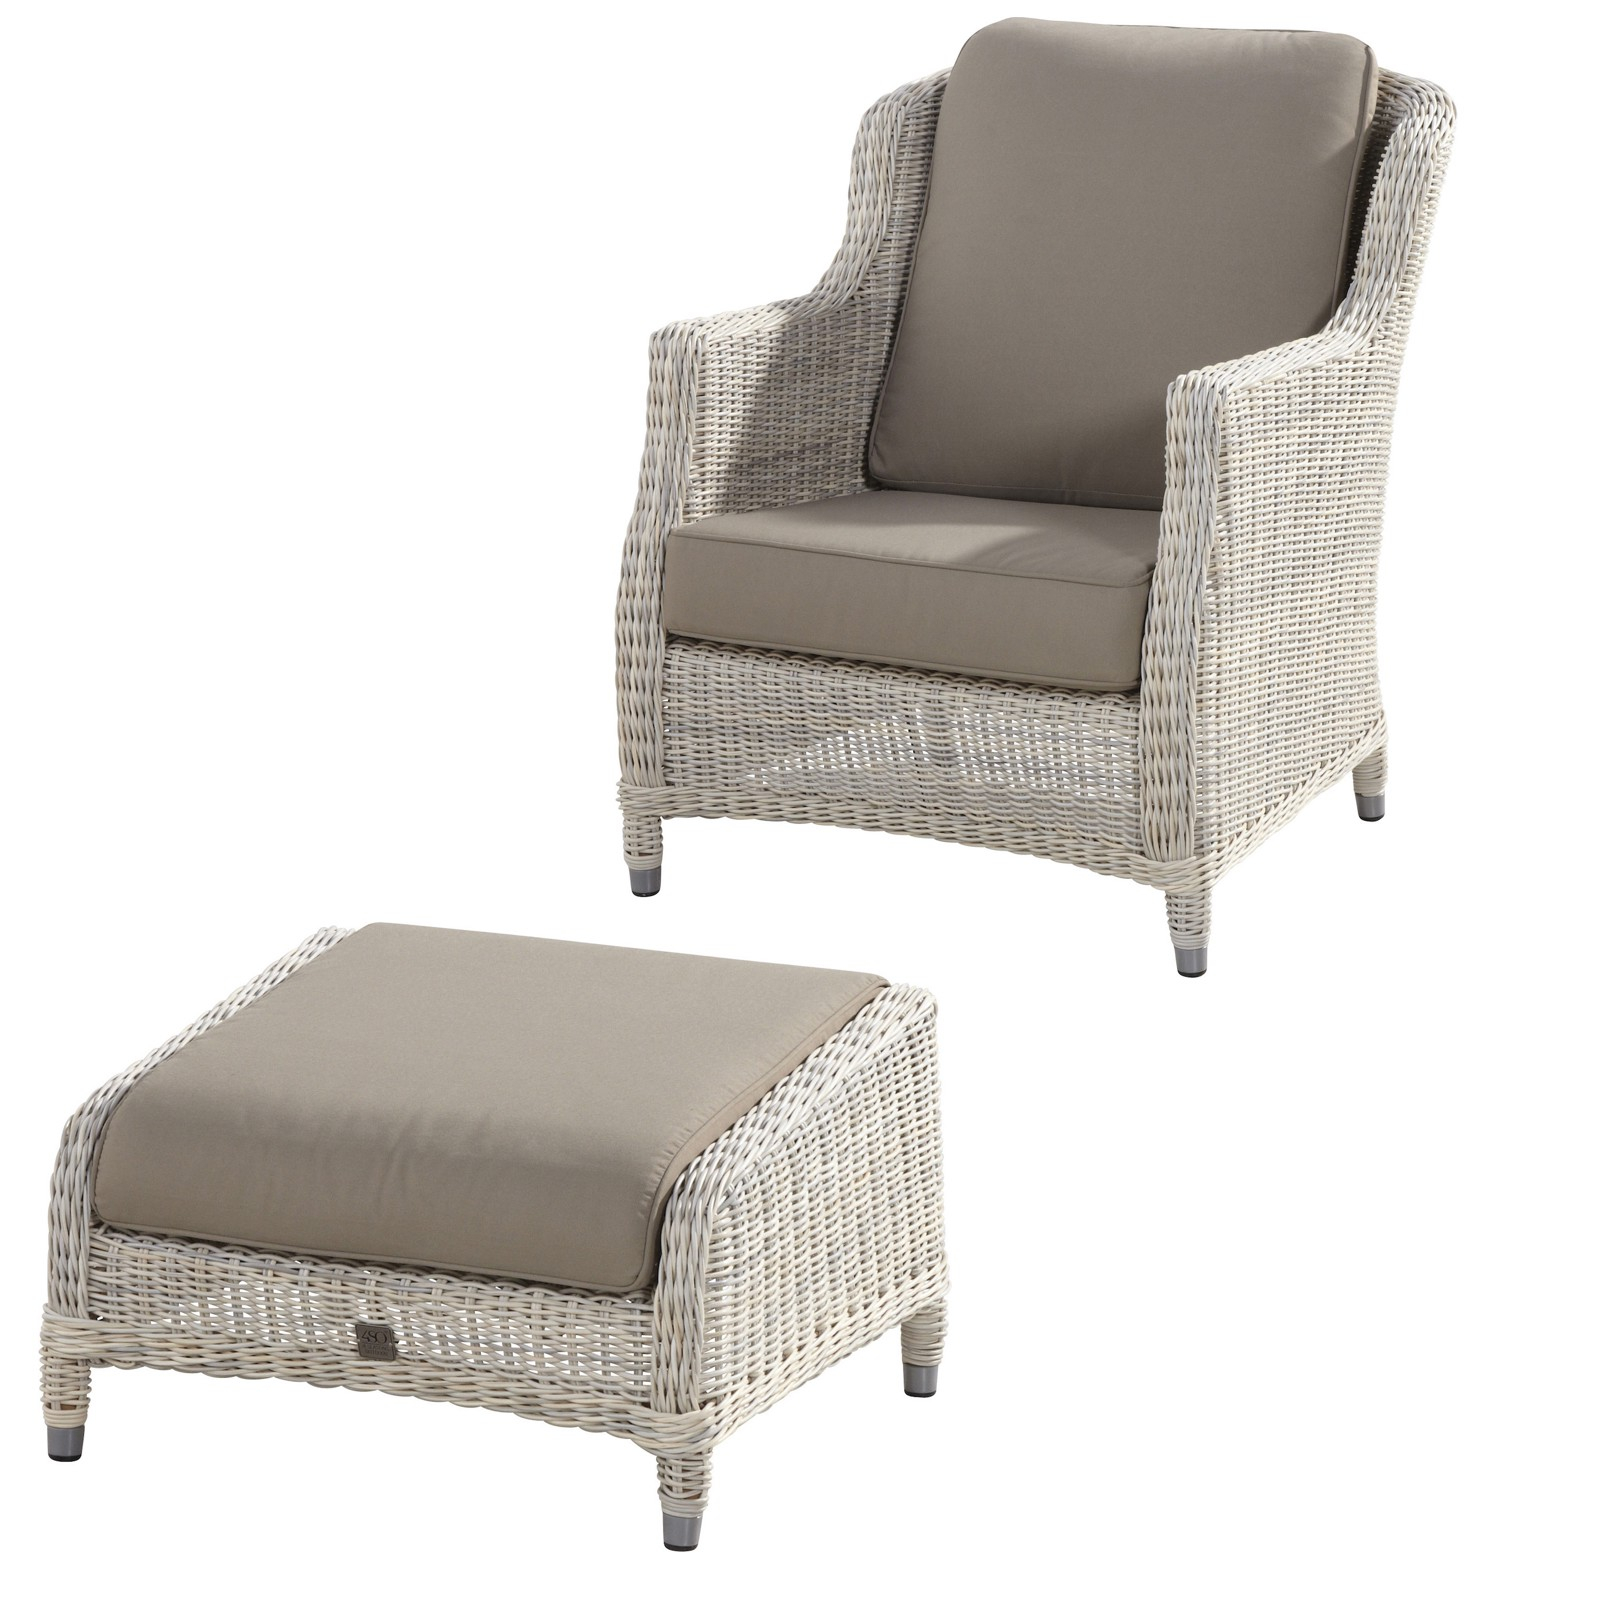 4Seasons Outdoor Brighton living Sessel mit Fußhocker Polyrattan ...